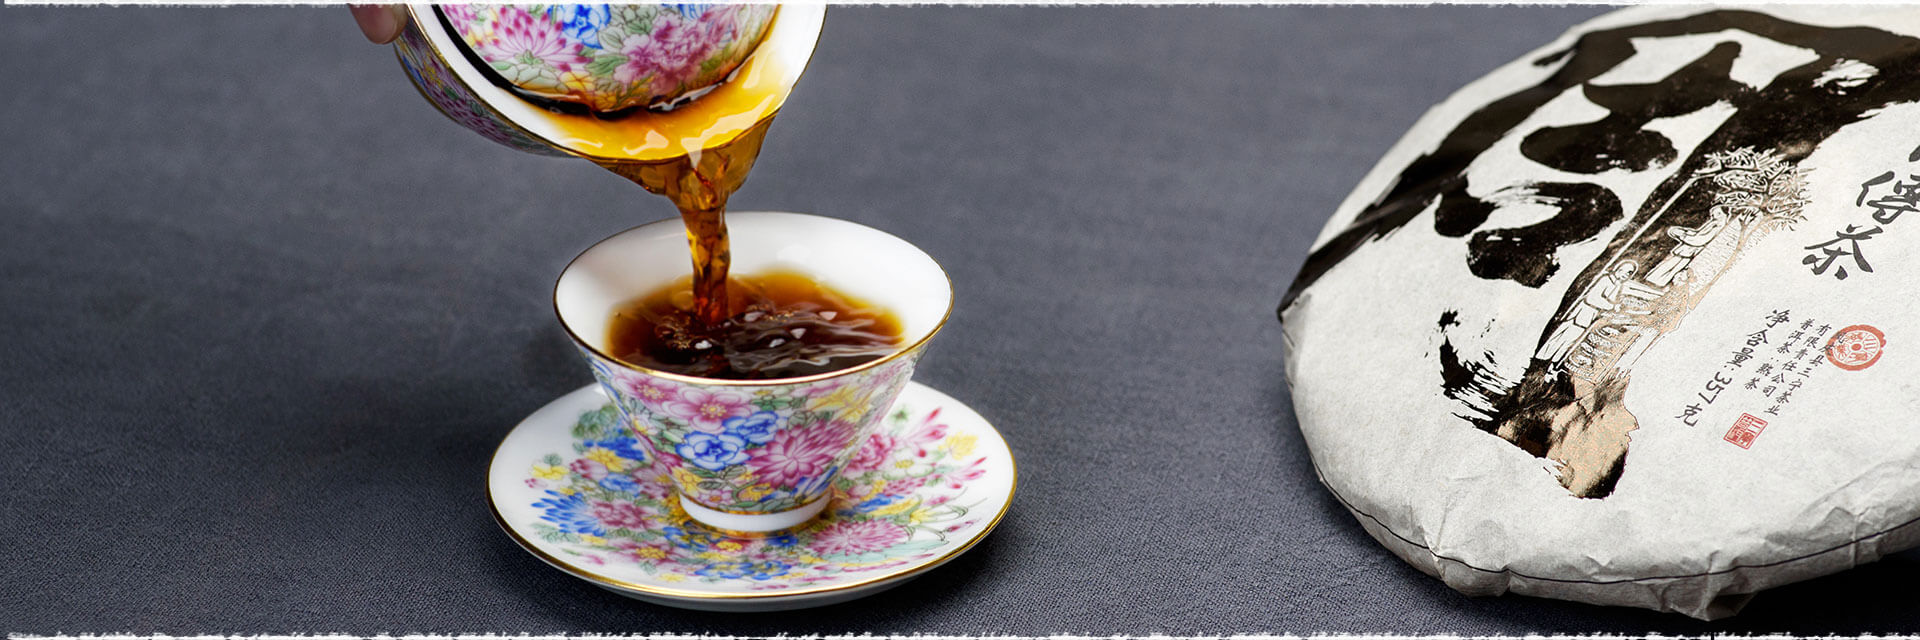 The Best Time For Picking Pu-erh Tea